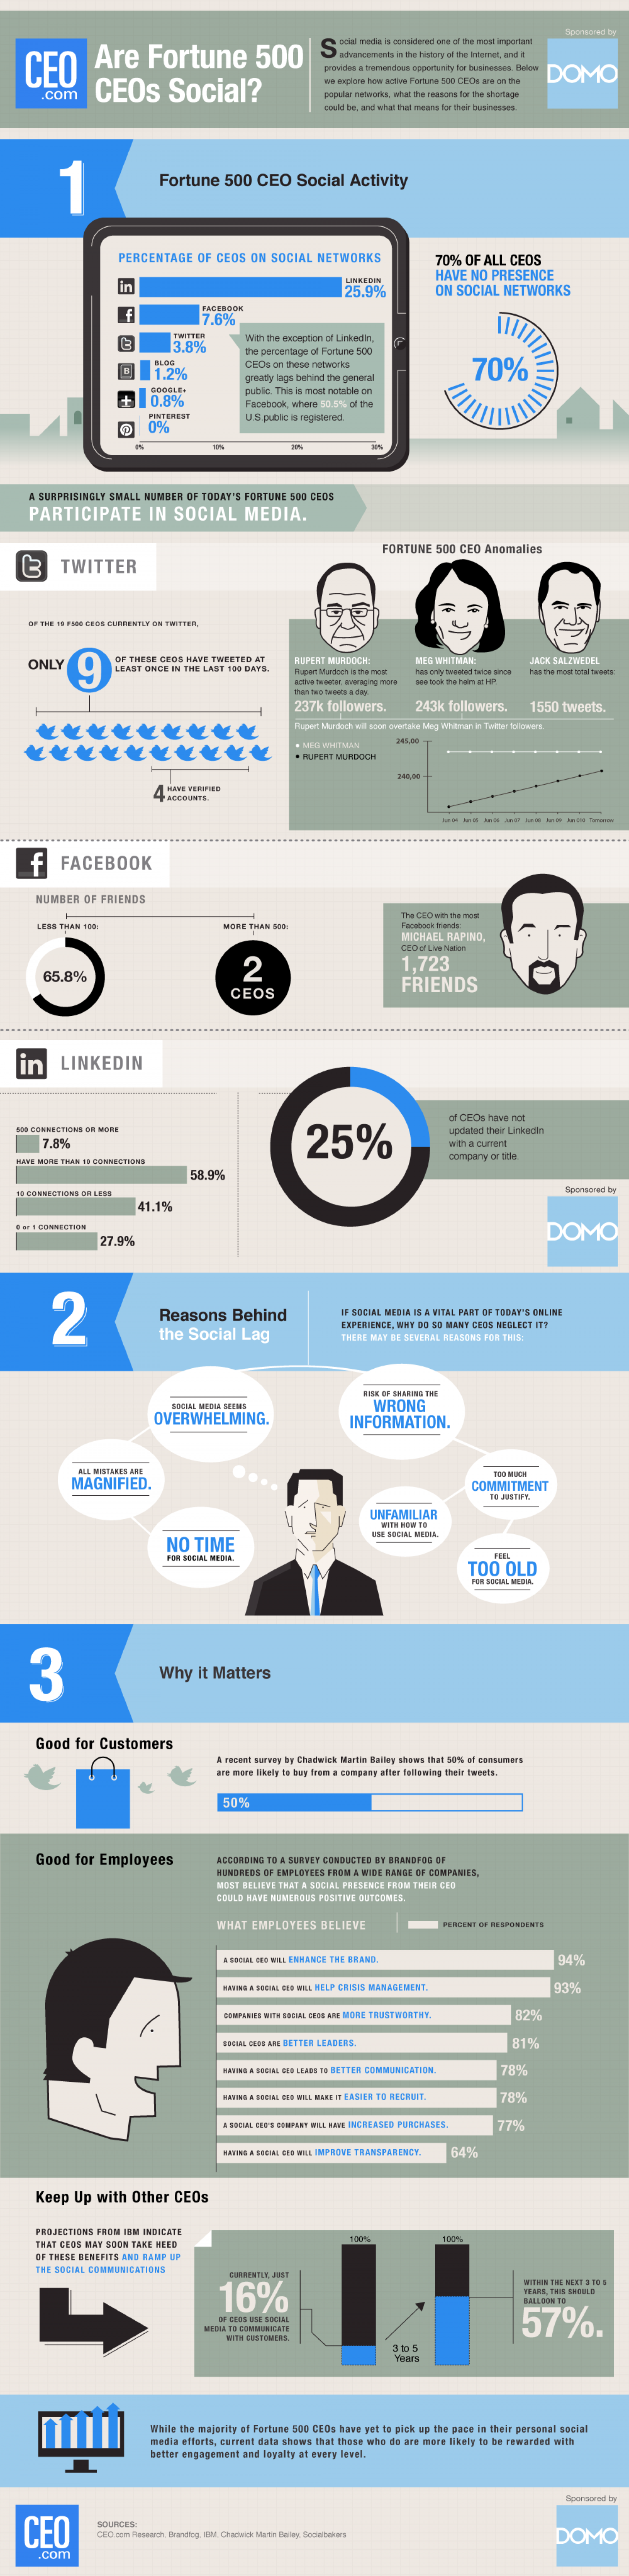 How Social Are Fortune 500 CEOs?  Infographic